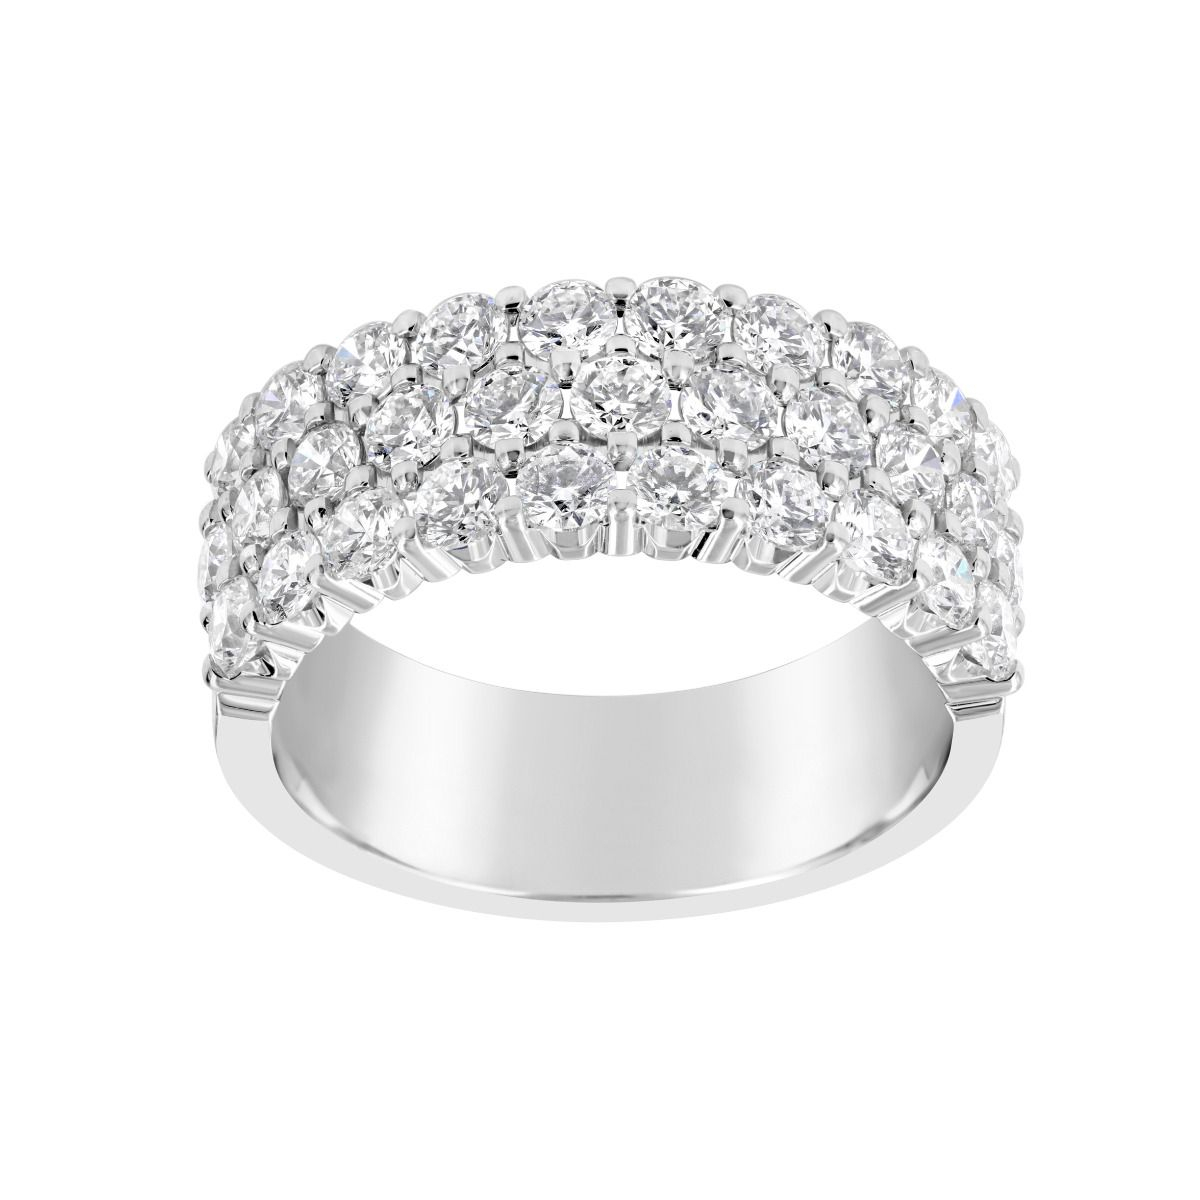 Twolondon 14k White Gold Three Row Medium Diamond Anniversary Band Regarding Best And Newest Diamond Double Row Anniversary Bands In White Gold (View 11 of 25)